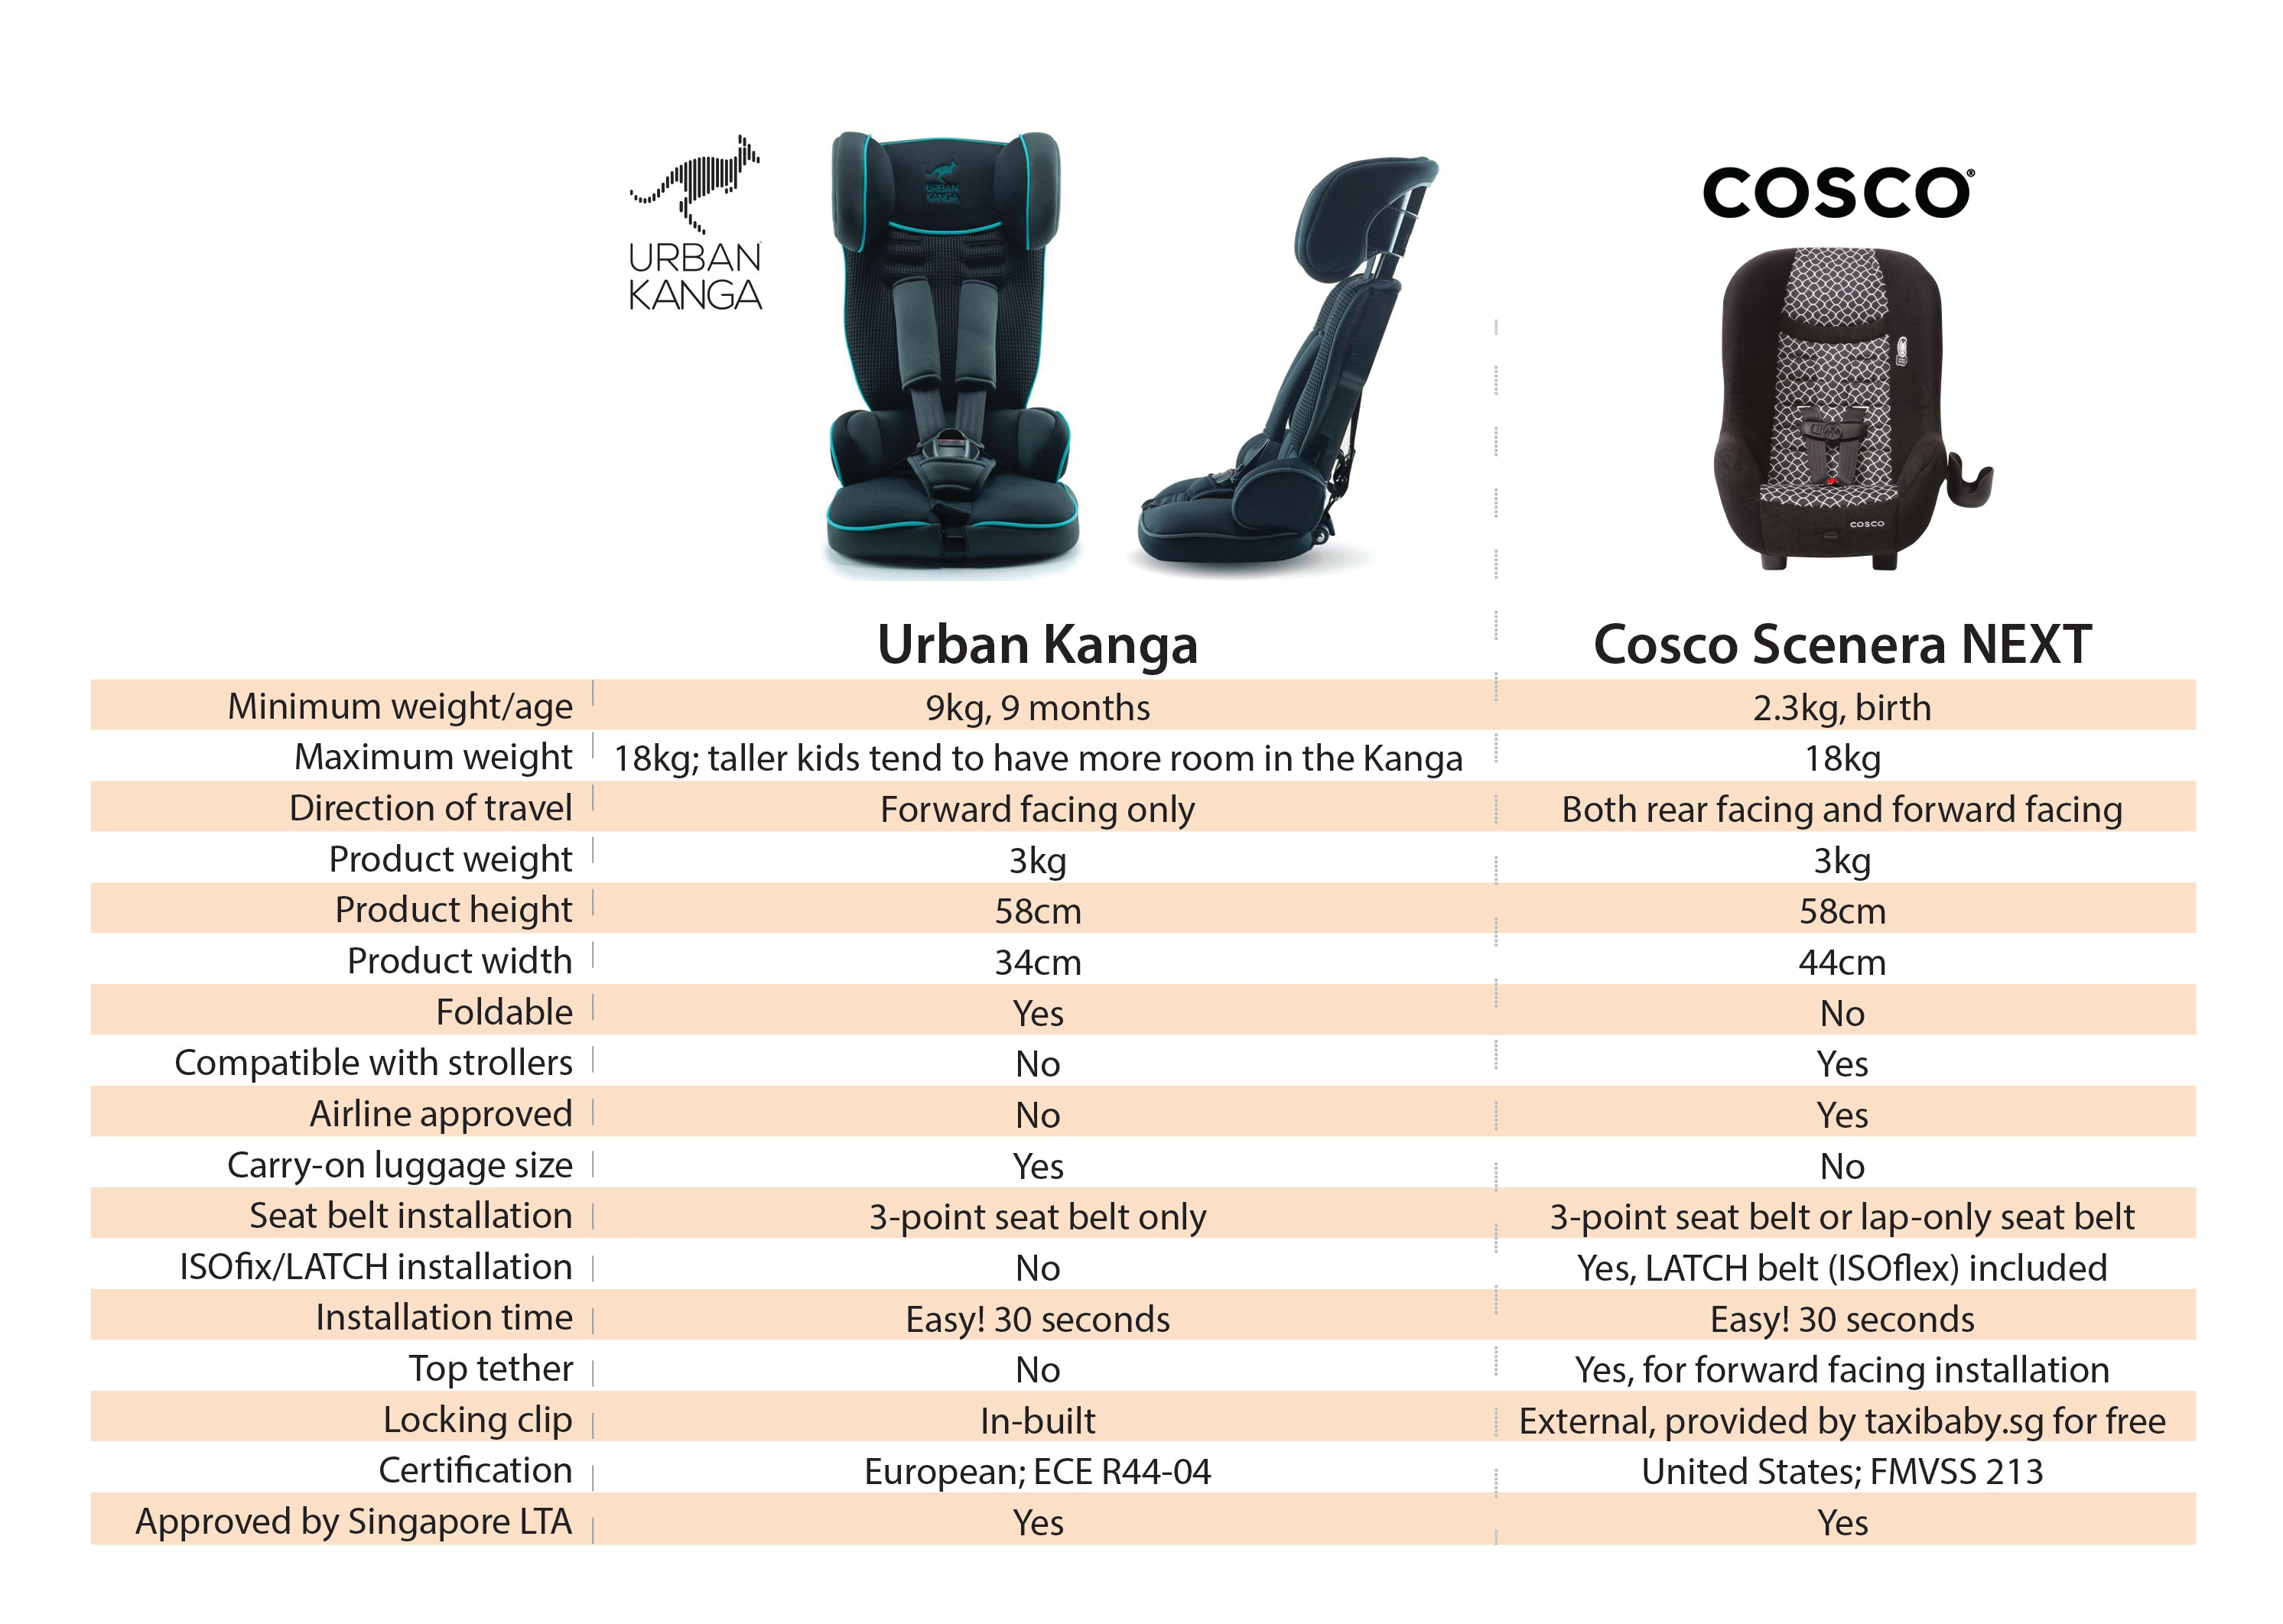 cosco vs urban kanga